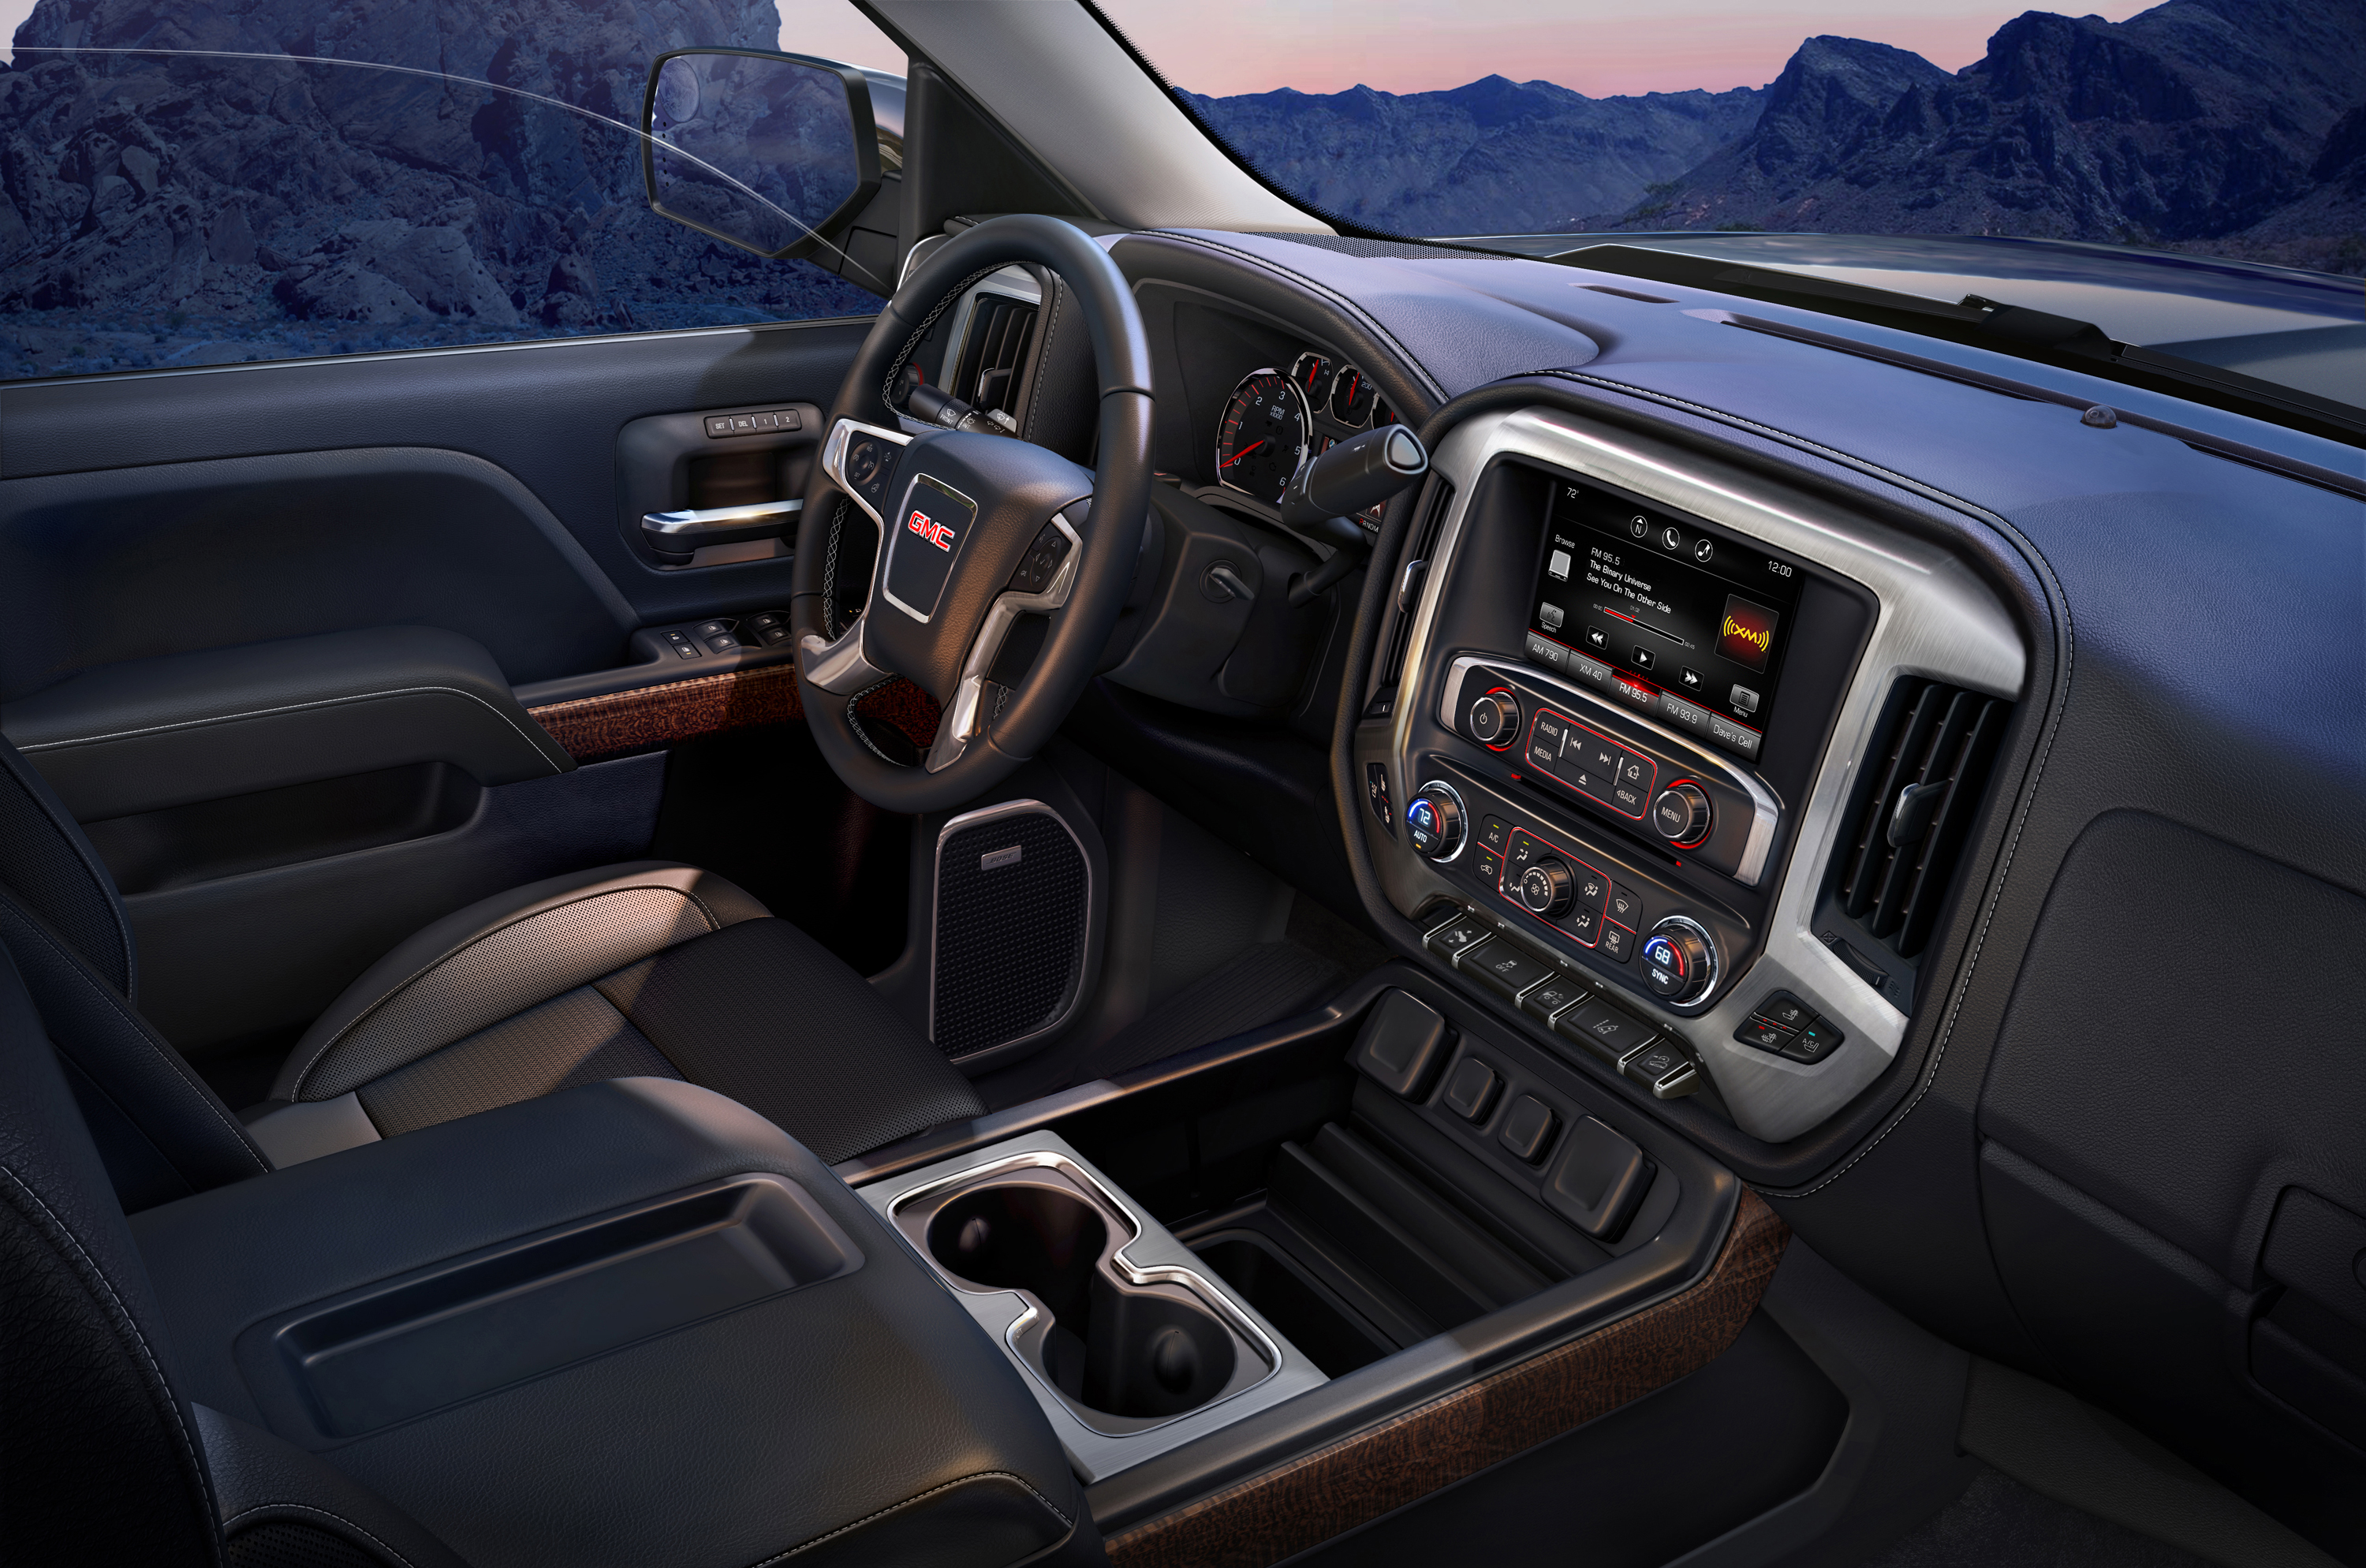 cab lease are for in tax up discussion crew at deals page just a car gmc the and including denali az forums prices reference details here picked i sierra